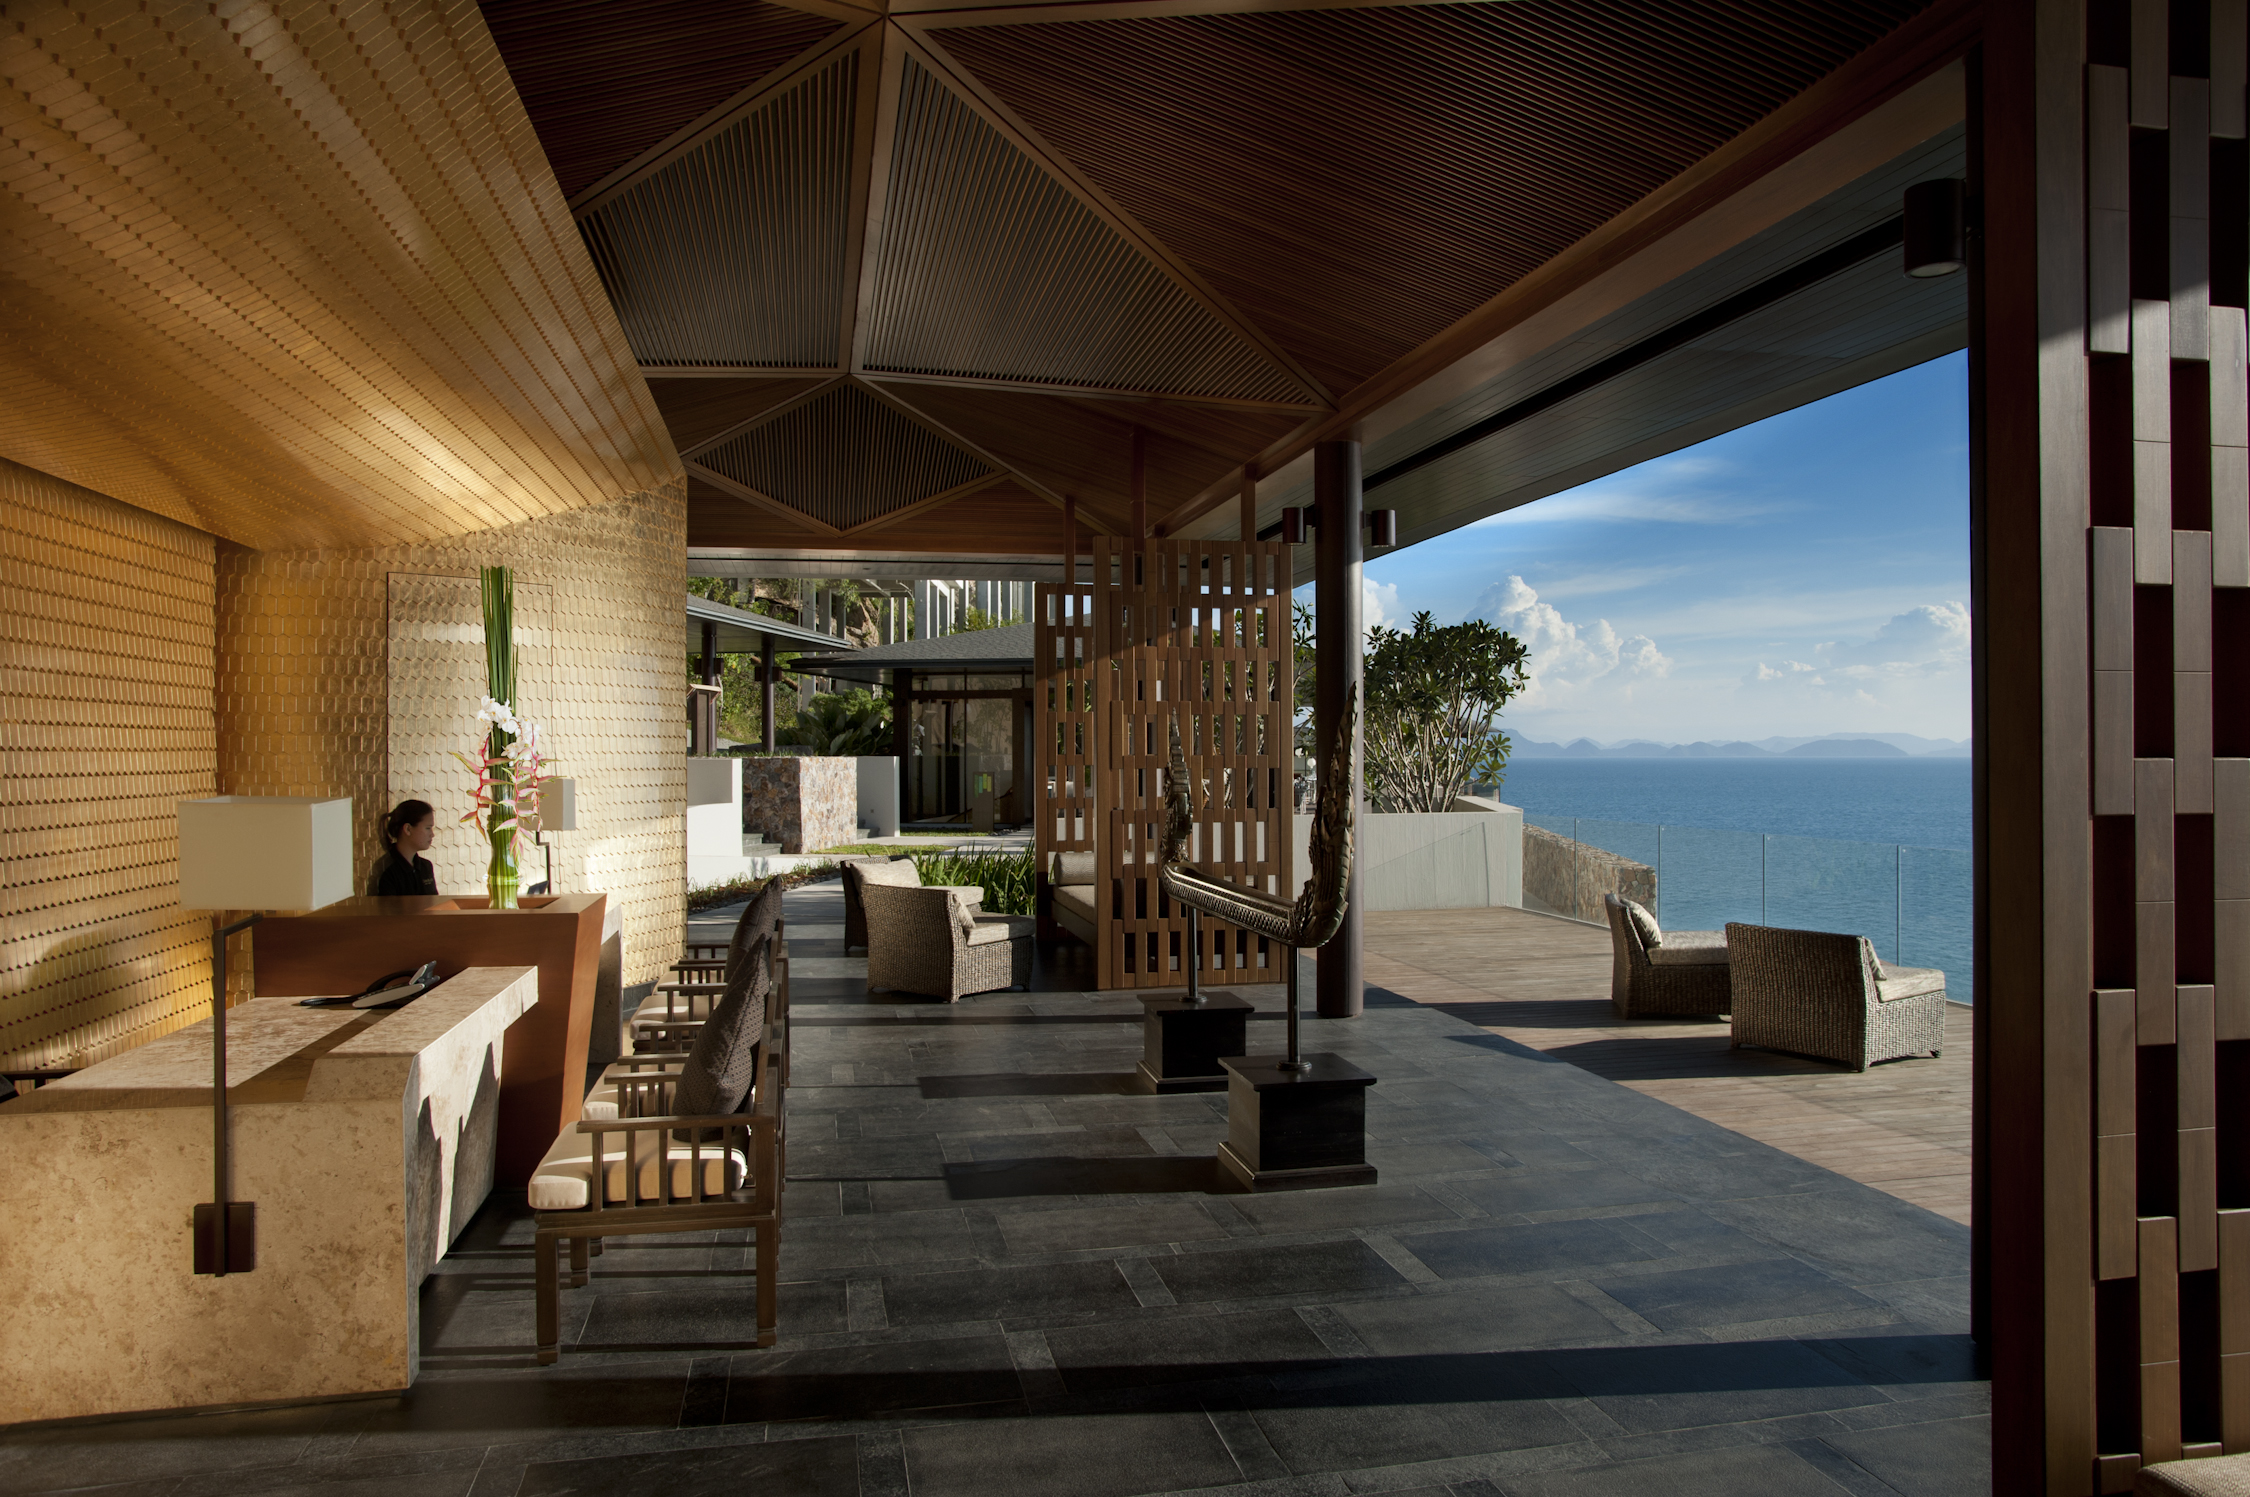 The reception desks are anchored by a welcoming backdrop that is reminiscent of a traditional Thai roof detail, very graceful in form and finished in gold-leaf. The remainder of the space is open to instill a sense of peace and tranquility.